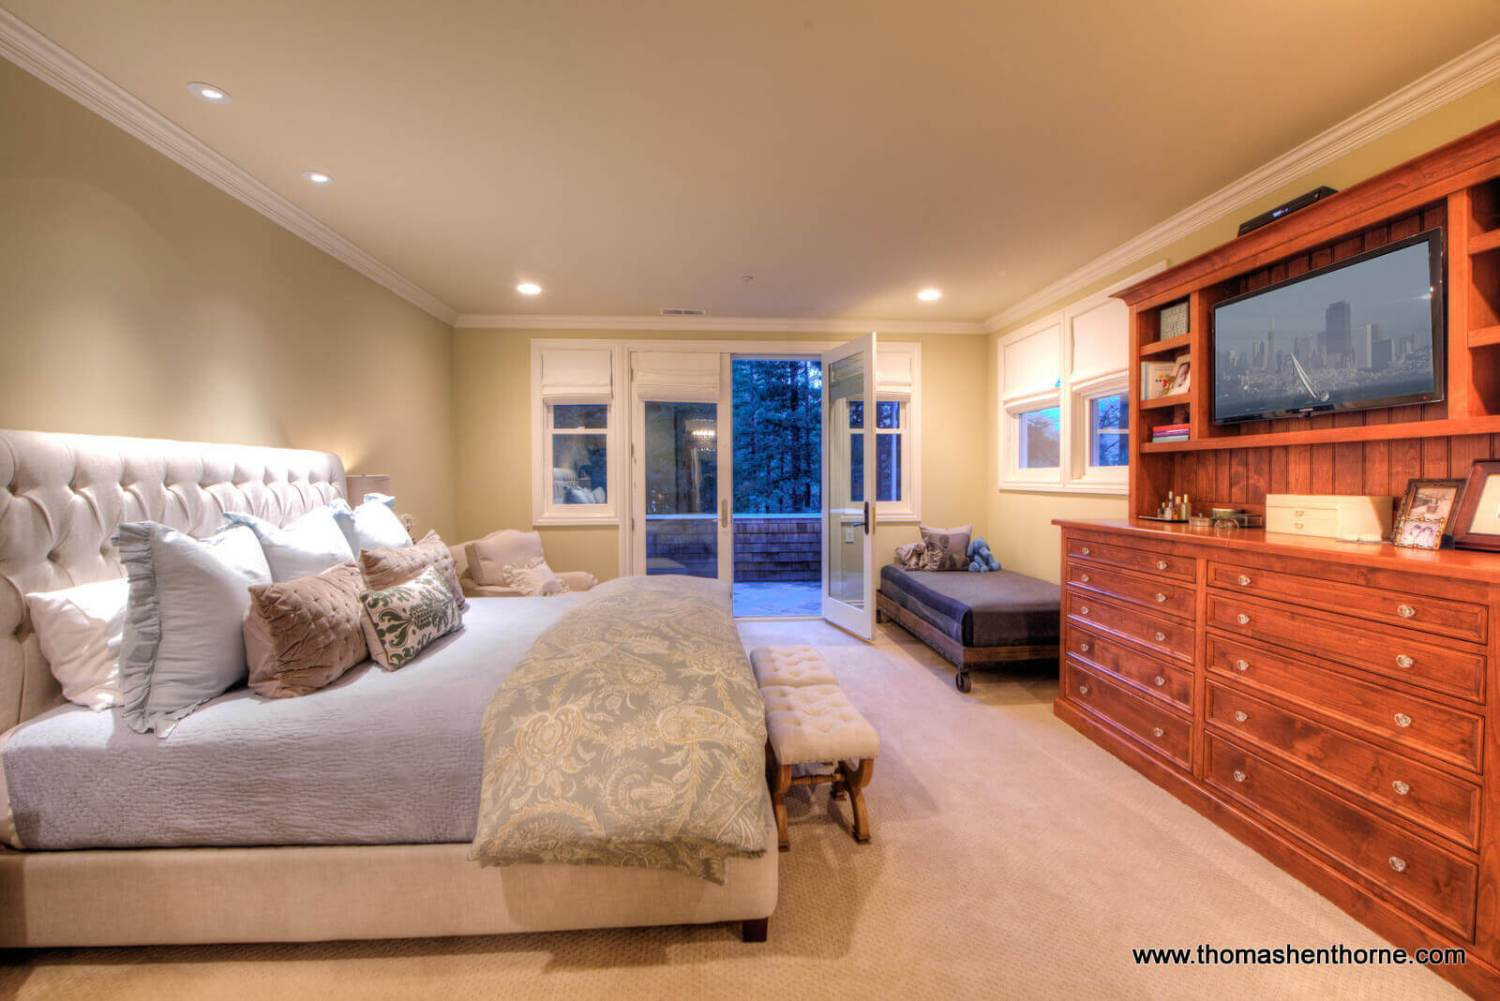 Master bedroom with french doors opening onto deck